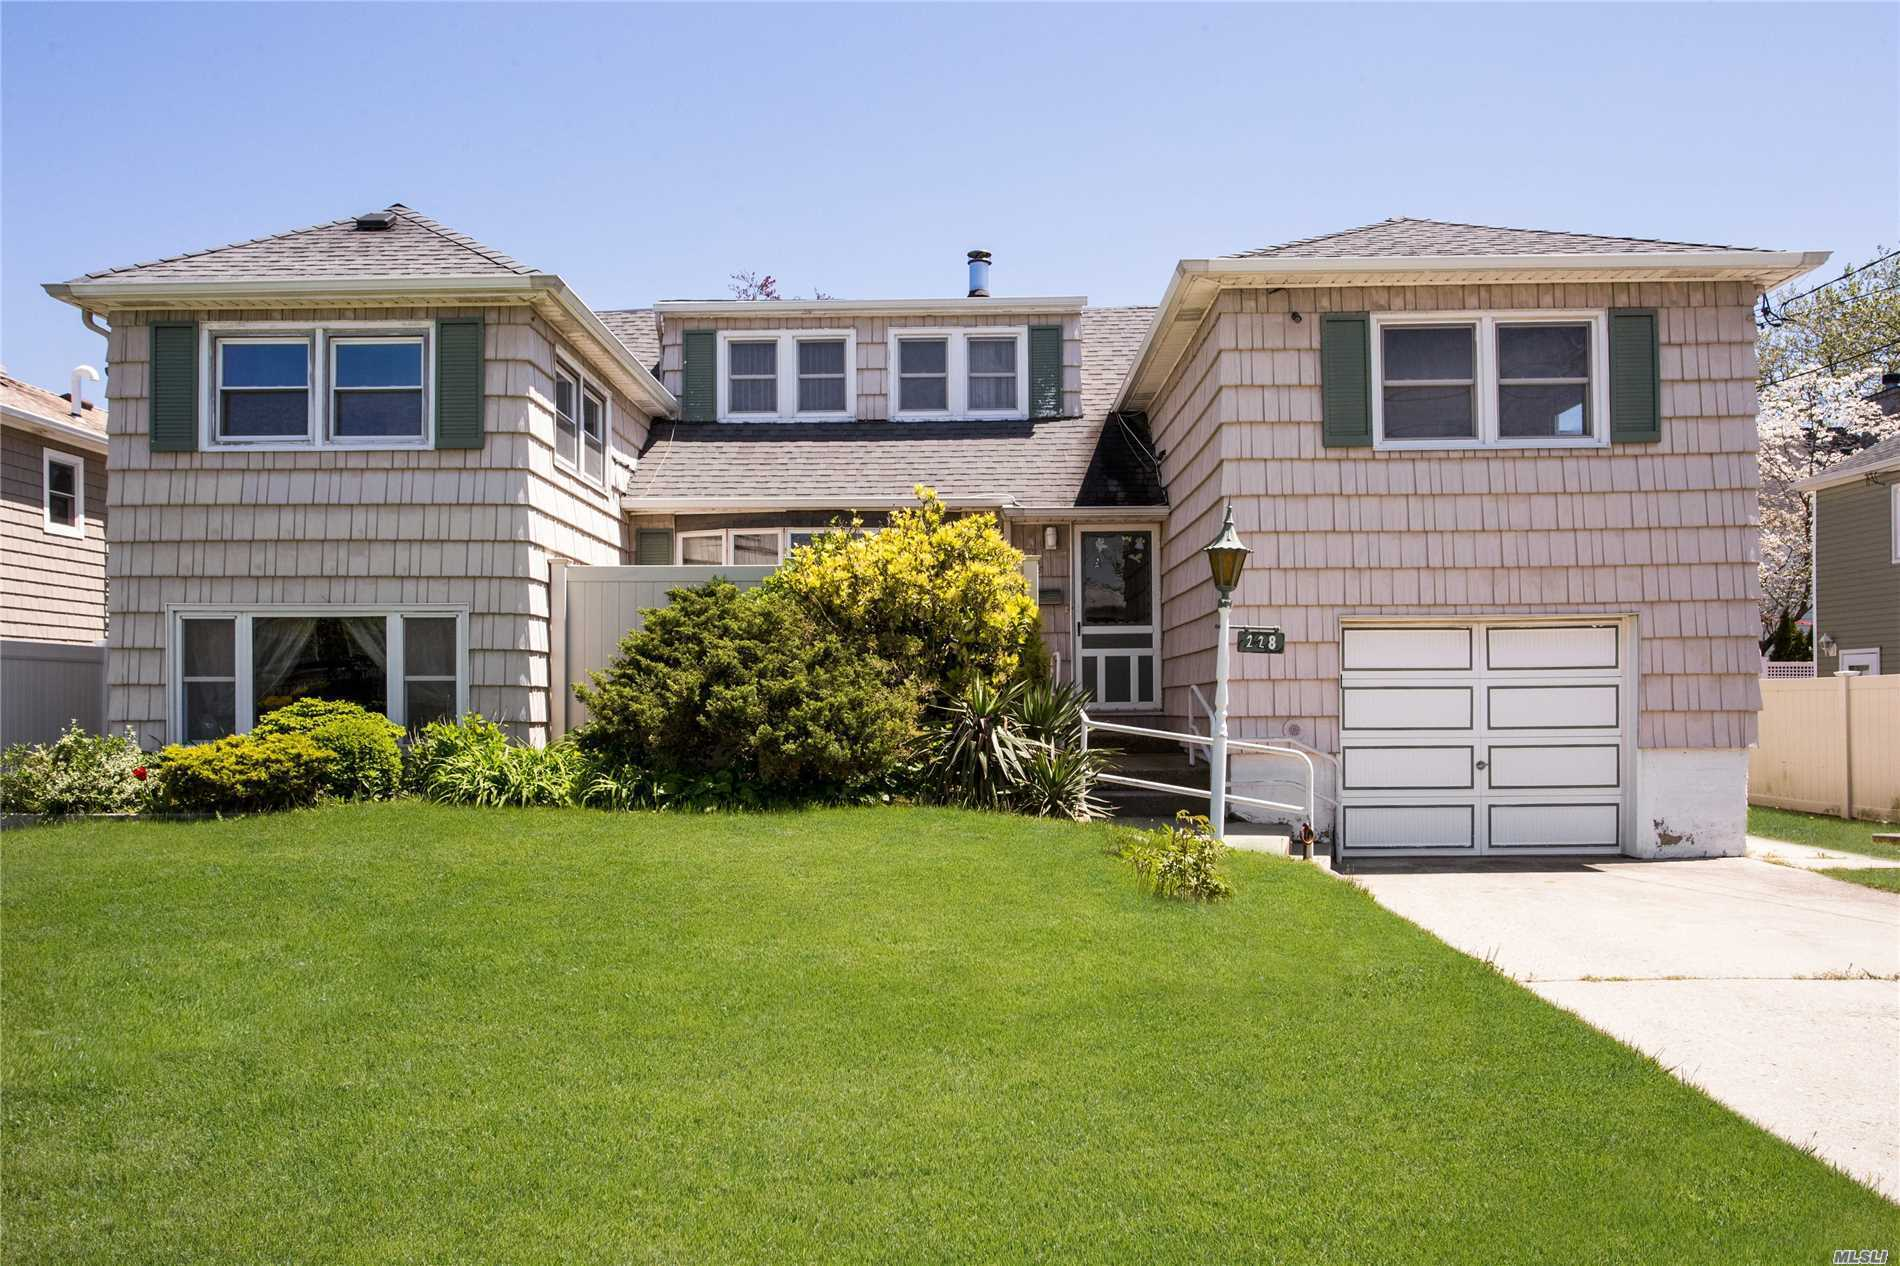 Harbor Isle - An Incredibly Rare 6 Bedroom Split-Level Home. Accompanying 2.5 Bathrooms, Spacious Family & Living Rooms, Formal Dining, & Eat-in Kitchen, Enjoy Large Front & Rear Yards With a Beautifully Maintained Lawn, Patio & Porch. Wood Stove-Fireplace. Dual Utility Rooms Great for Storage & Laundry, Full Attic, 1 Car Garage & Driveway. Flood Insurance Only $482 Per Year!